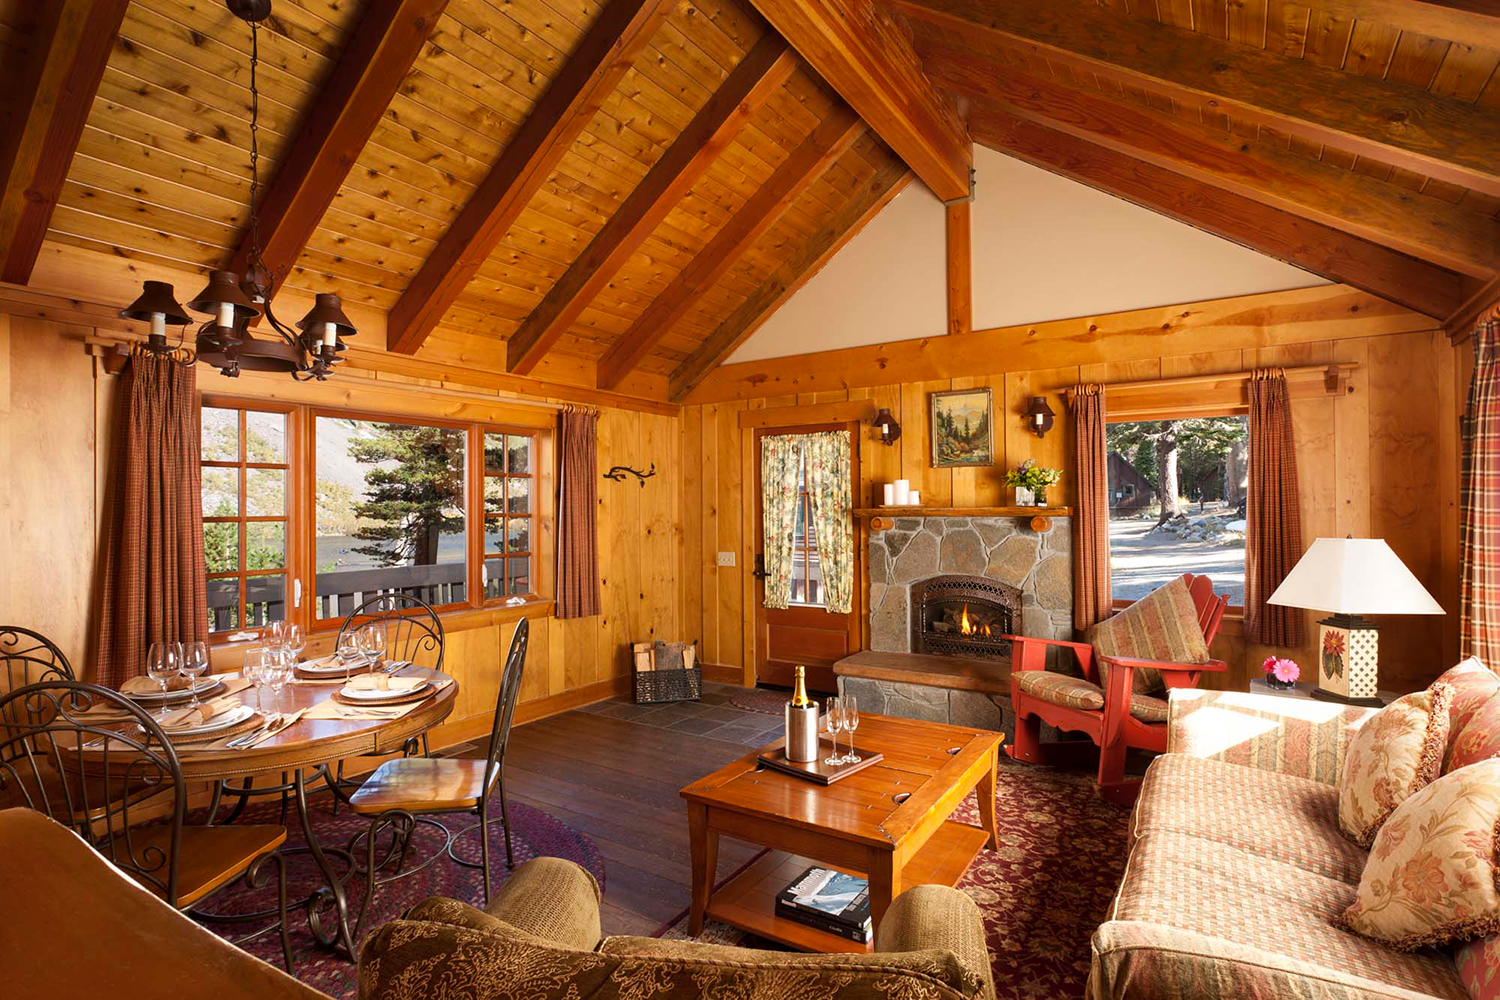 The 7 Best Lakeside Lodges in California